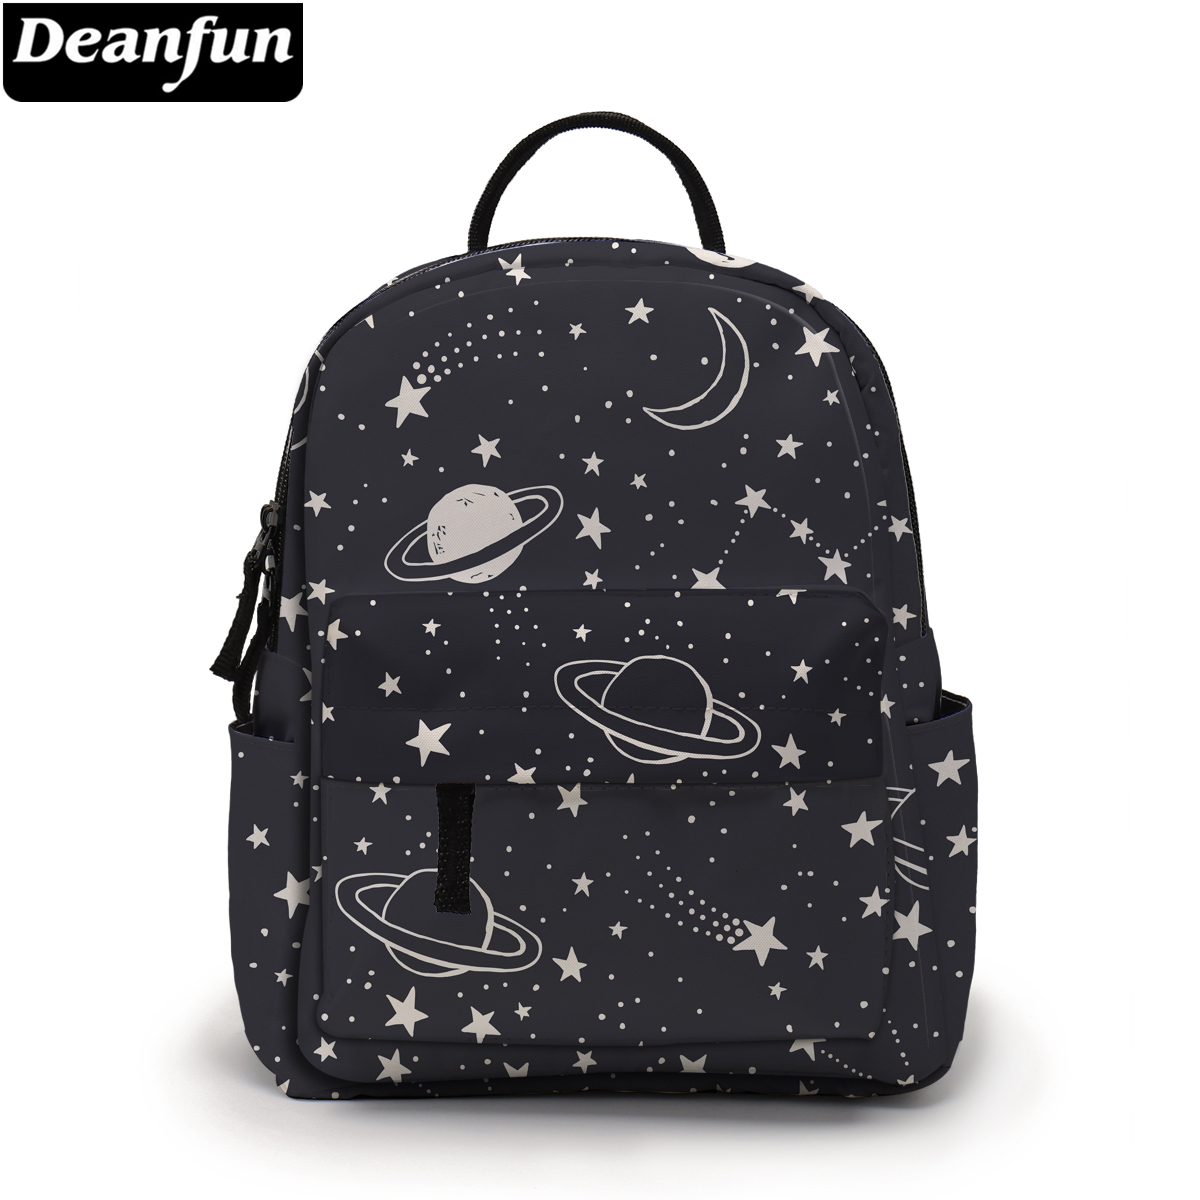 Deanfun Planet Printing Mini Backpack Star Pattern Gorgeous Girls Shoulder Bags Fashion School Backpack For Teenagers MNSB-24